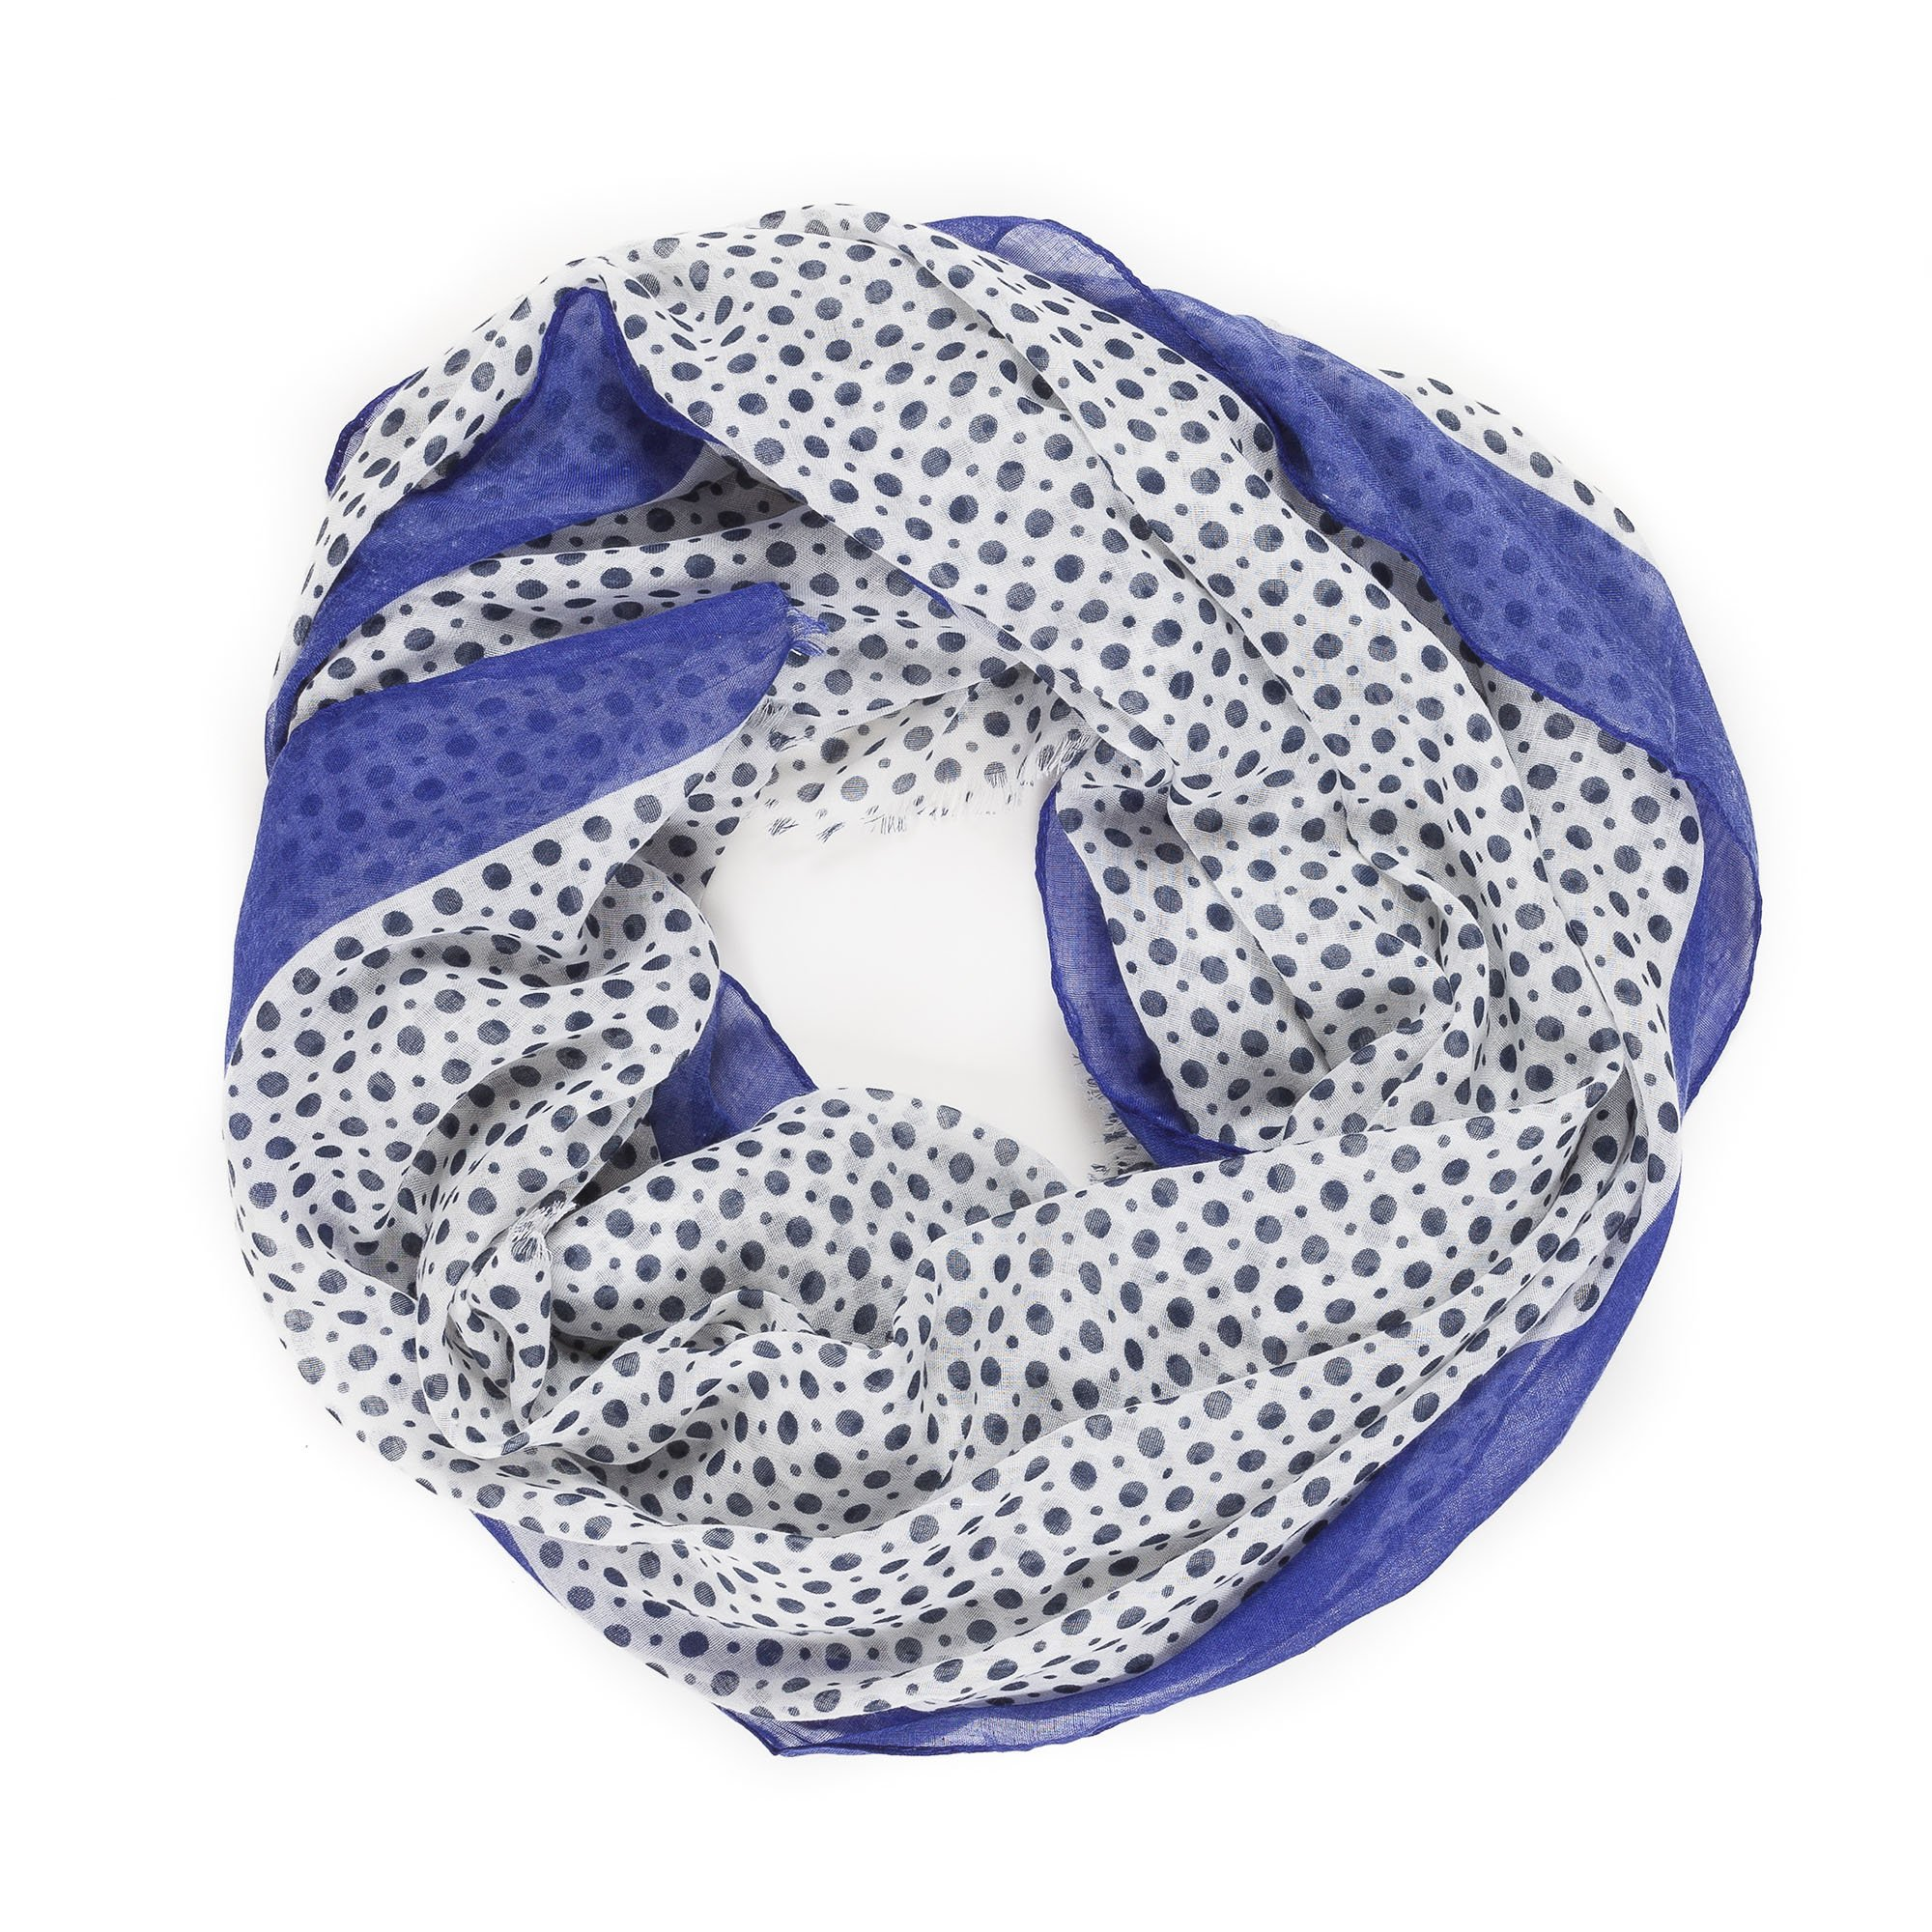 Scarves for Women by MIMOSITO Fashion Lightweight Elegant Geometric Patterned Wrap (Polka Dot-Blue) by MIMOSITO (Image #6)